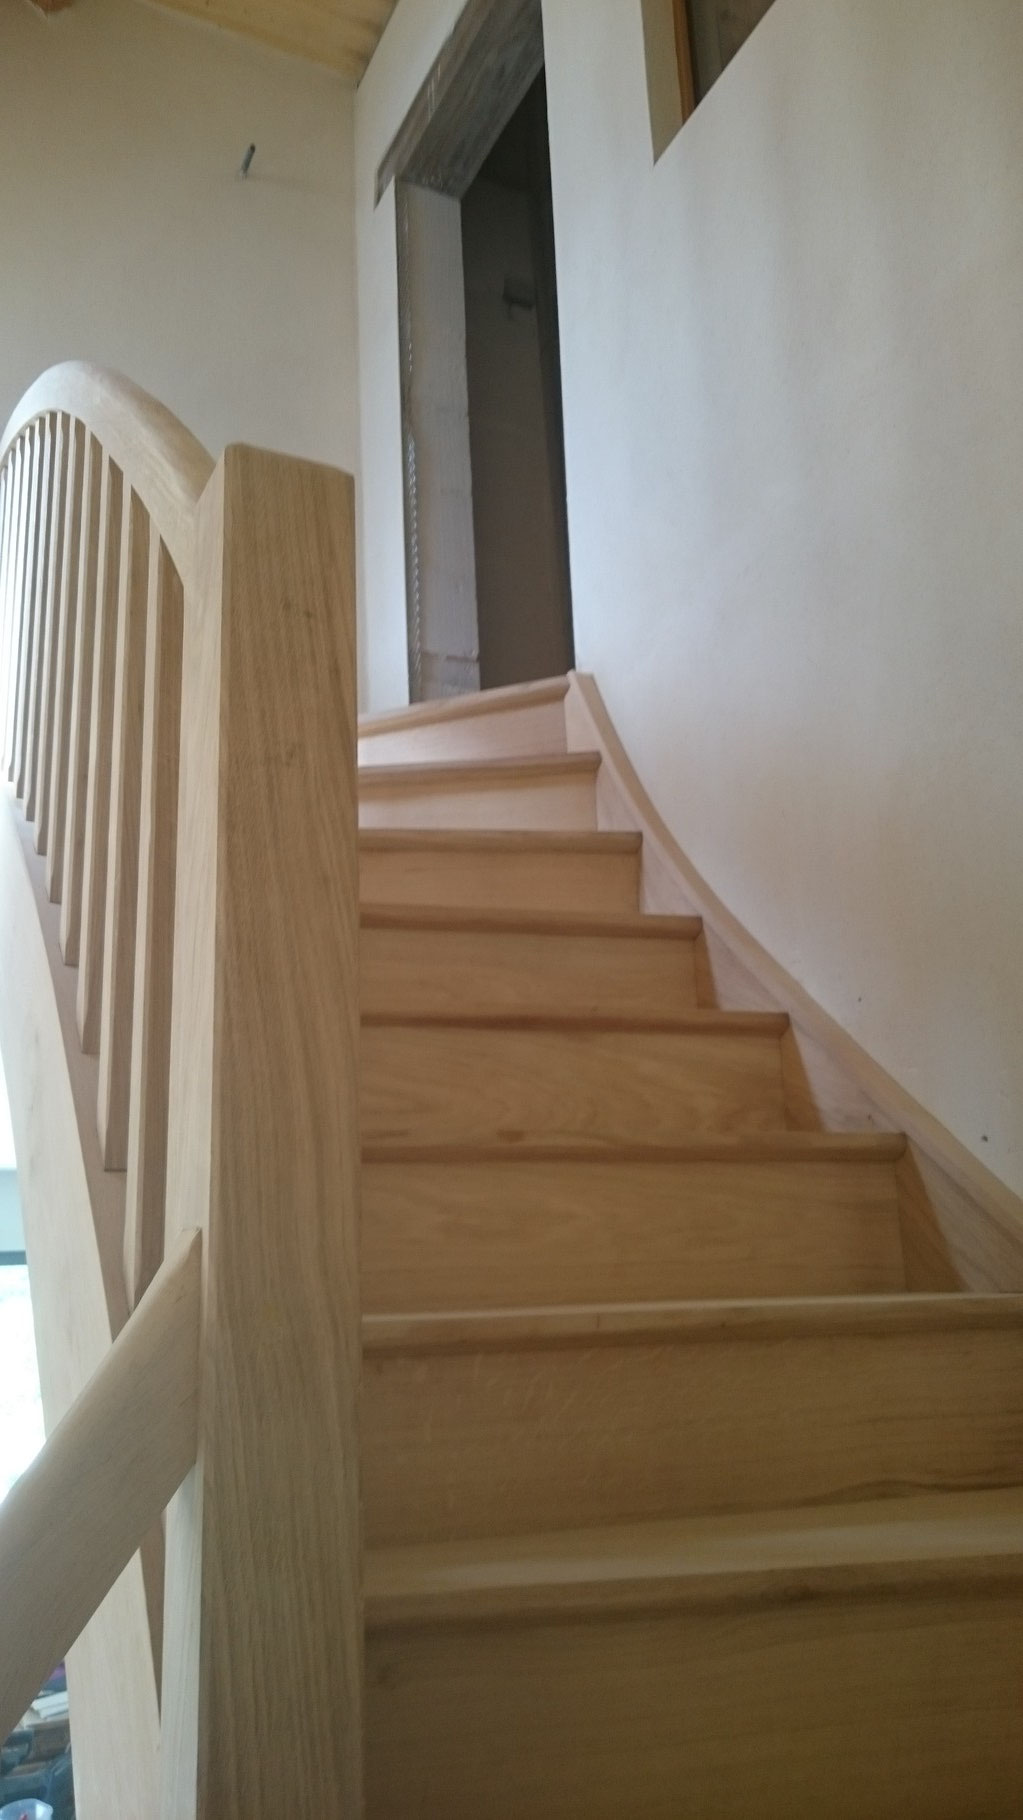 Menuiserie site de charpentevincent for Amenagement escalier interieur